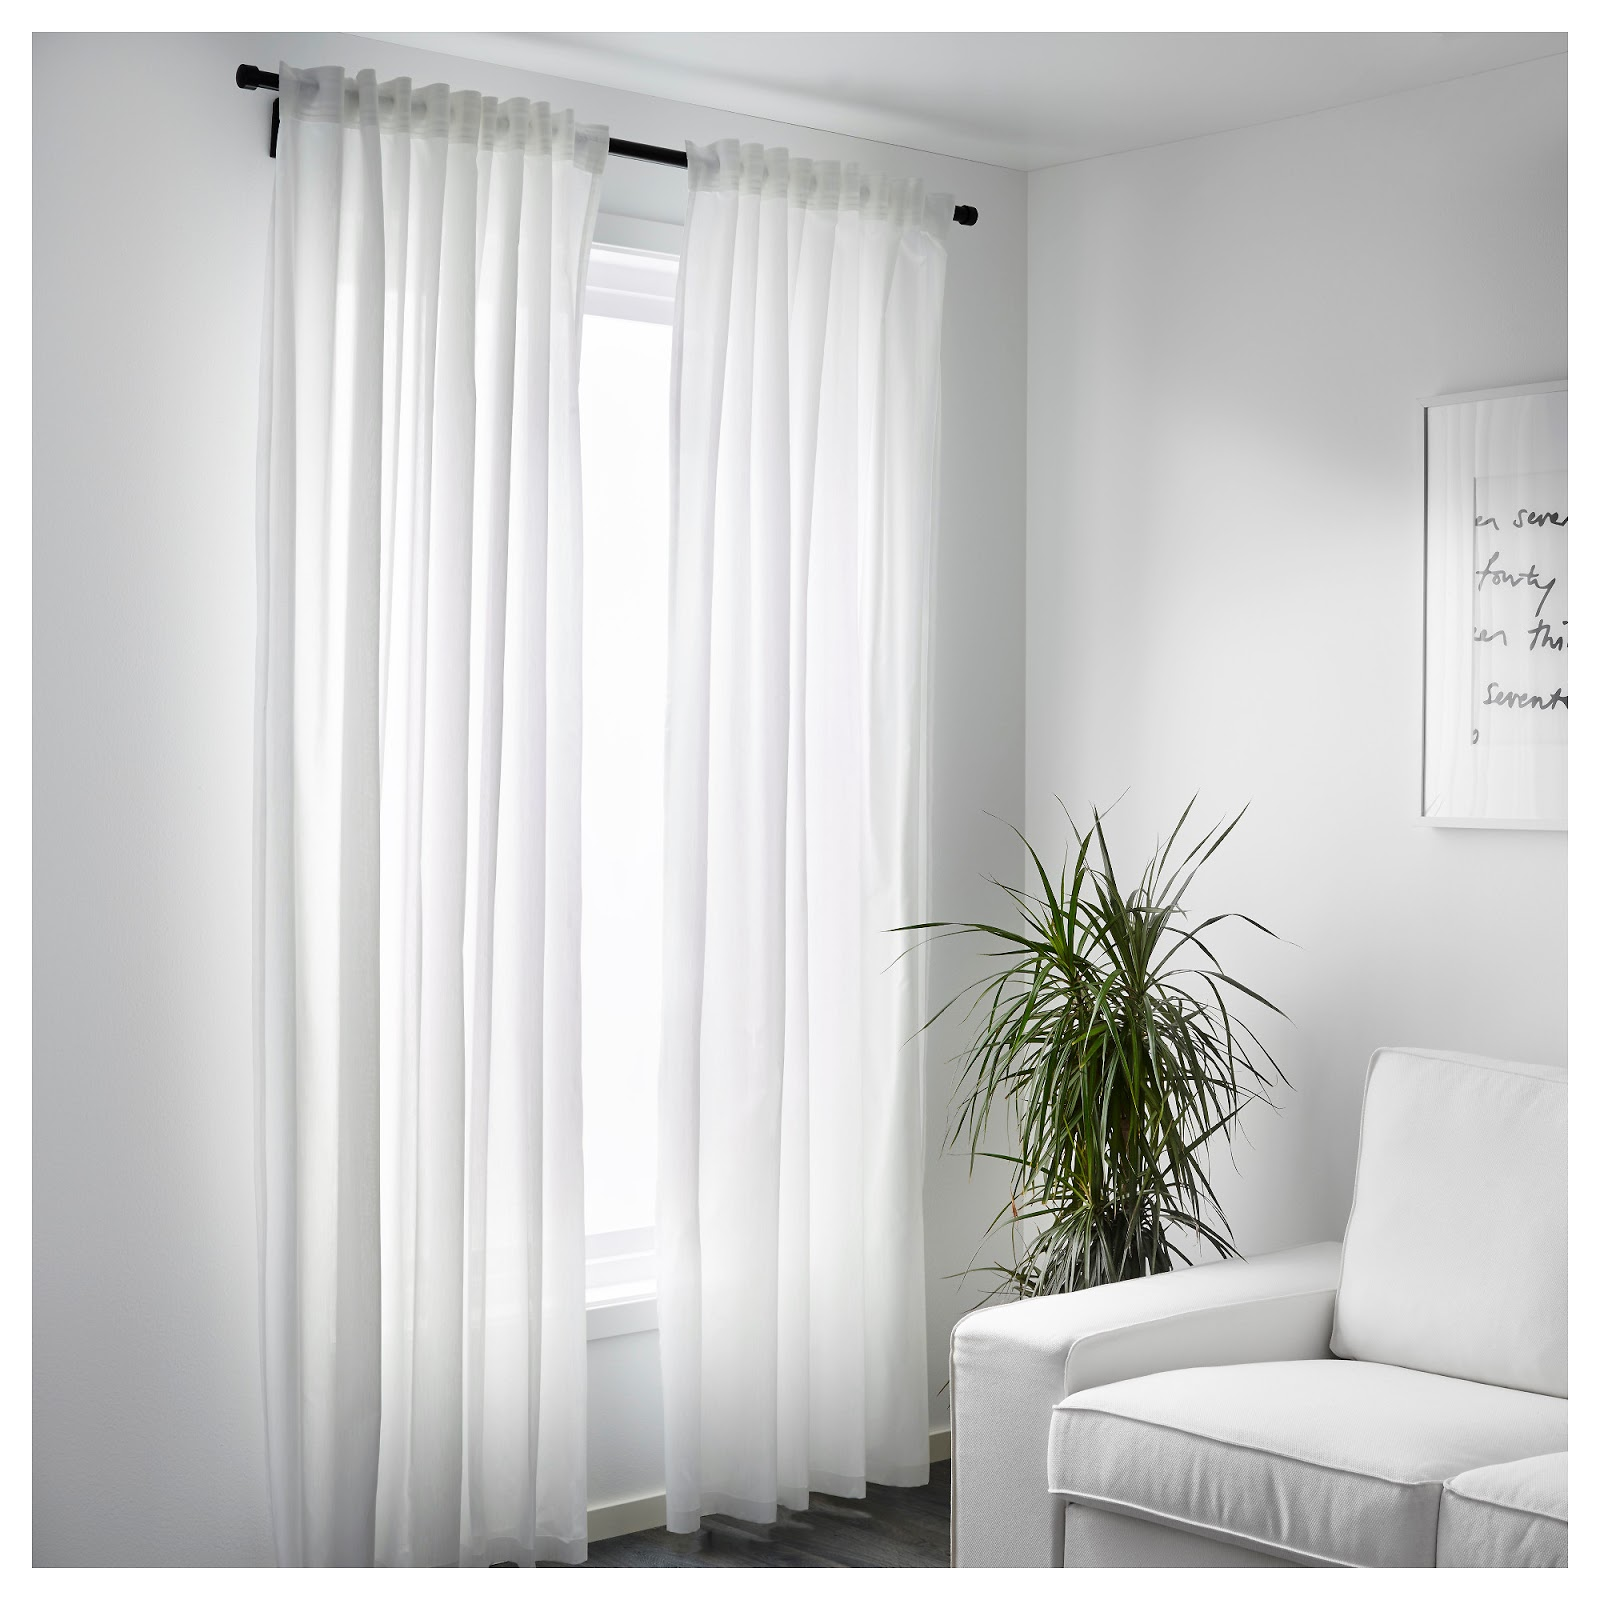 Curtain Hanging System Systems Tips Types Hangings